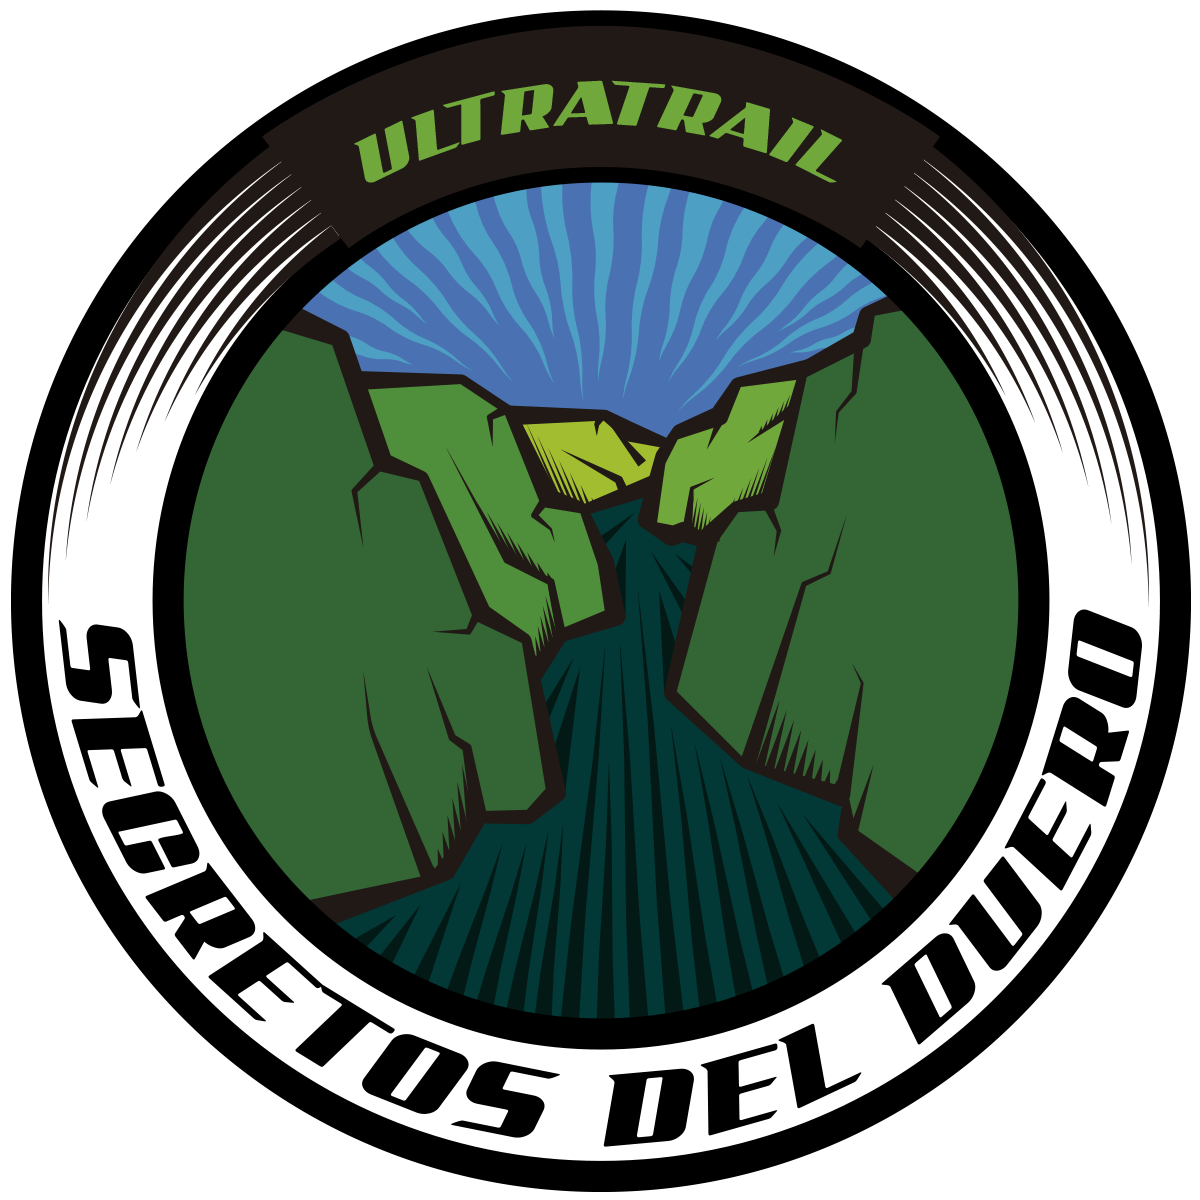 UltraTrail Secretos de Duero